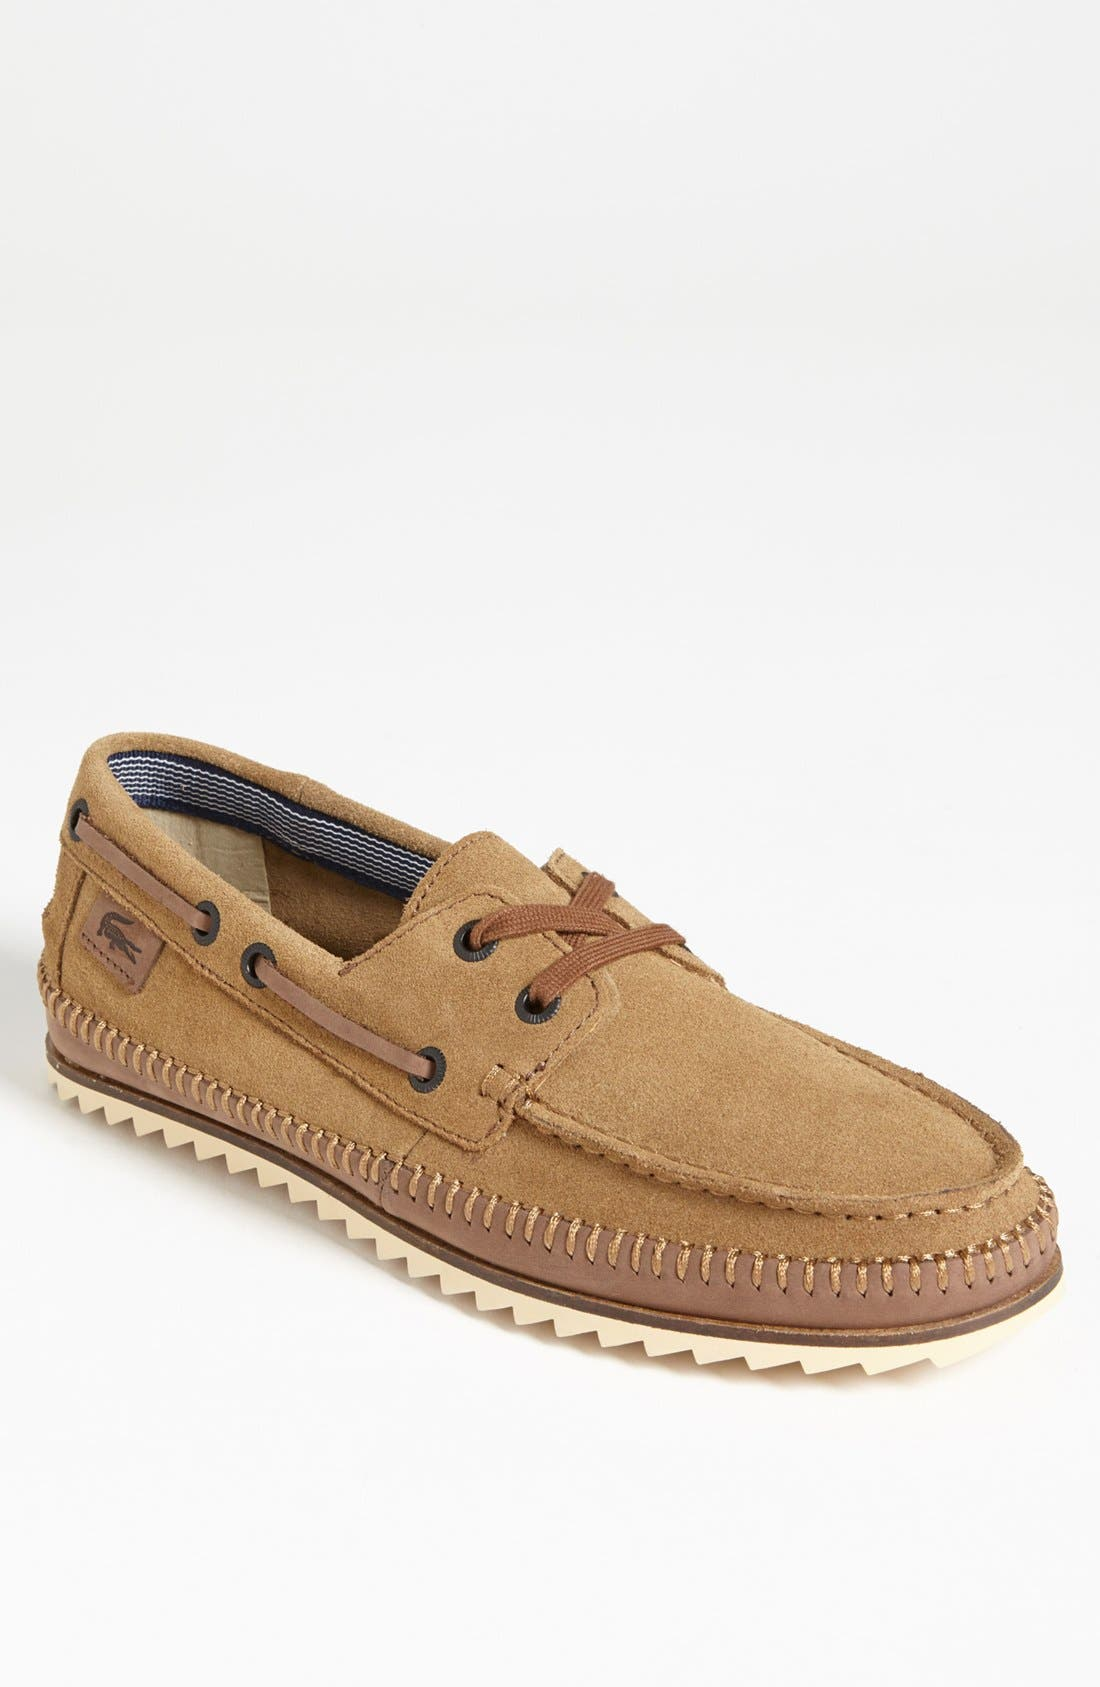 Alternate Image 1 Selected - Lacoste 'Sauville' Boat Shoe